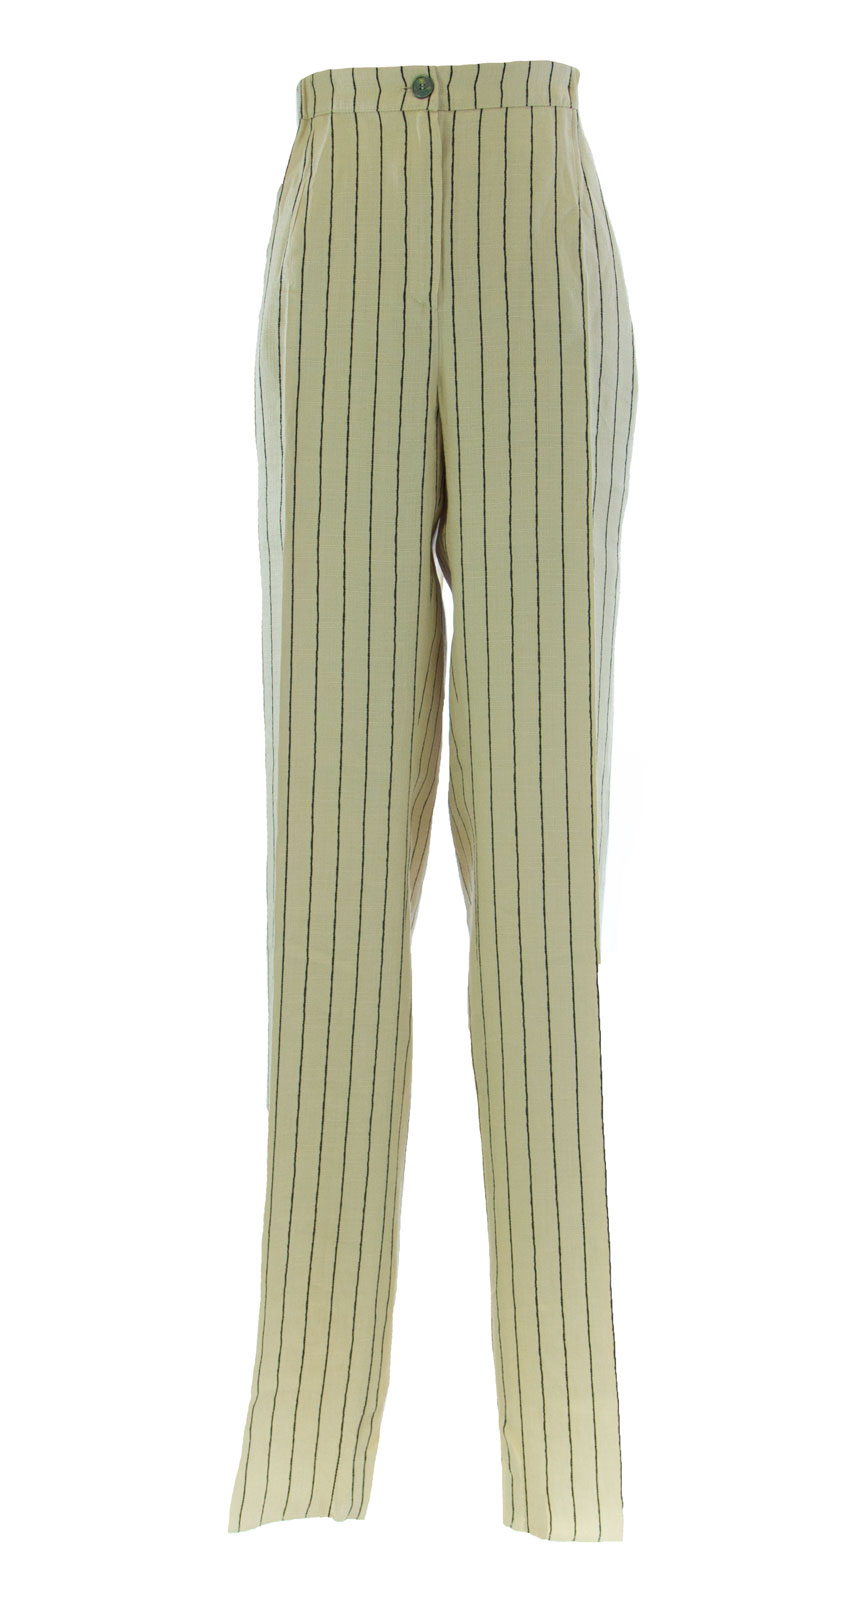 MARINA RINALDI by MaxMara Cream Pinstriped Unhemmed Dress Pants  437 NWT